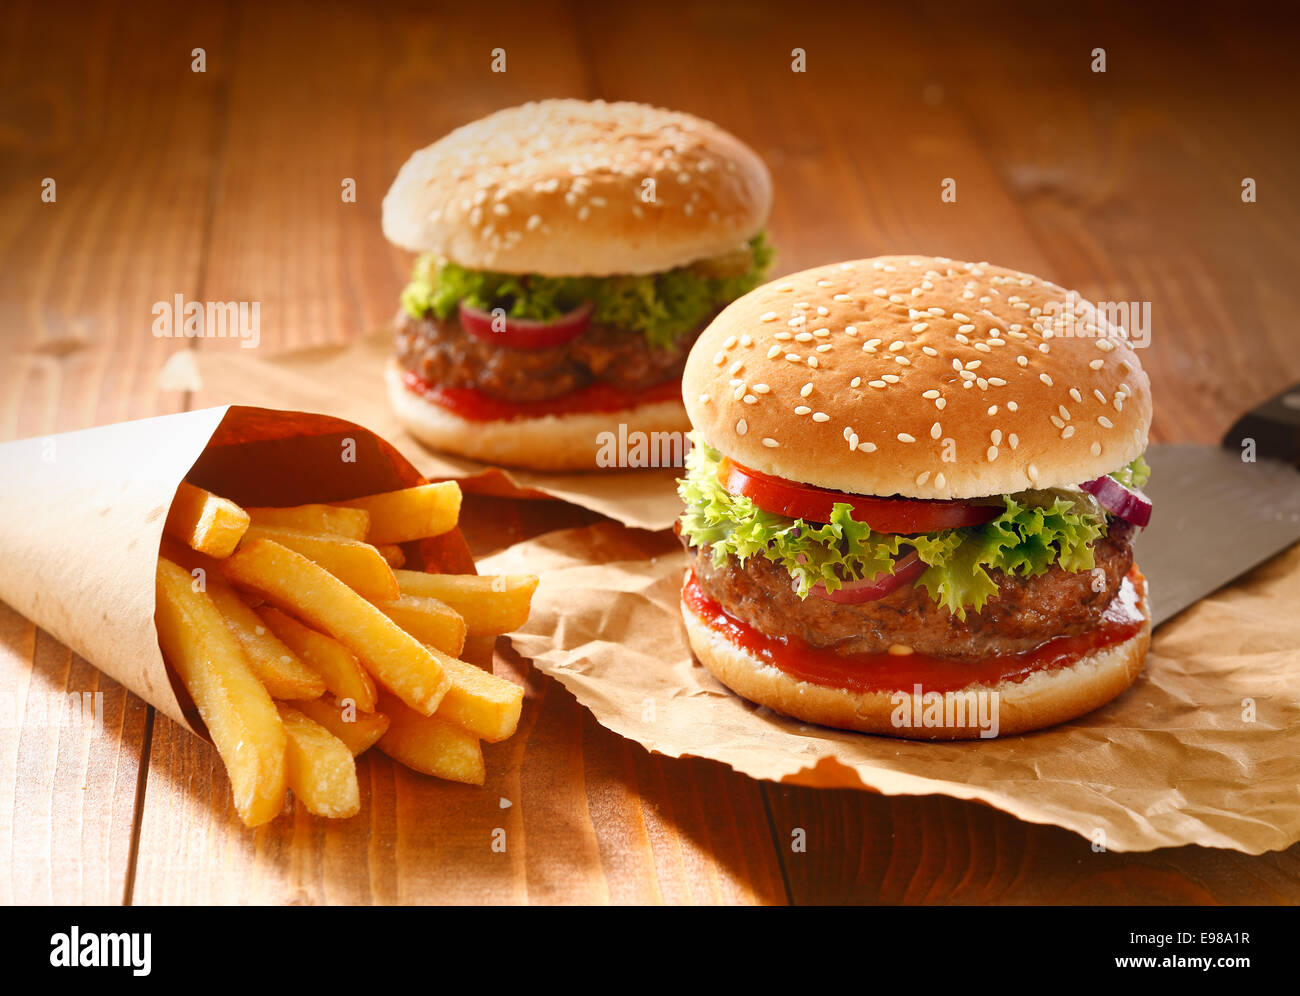 Two hamburgers and french fries with sesame bun on brown paper - Stock Image